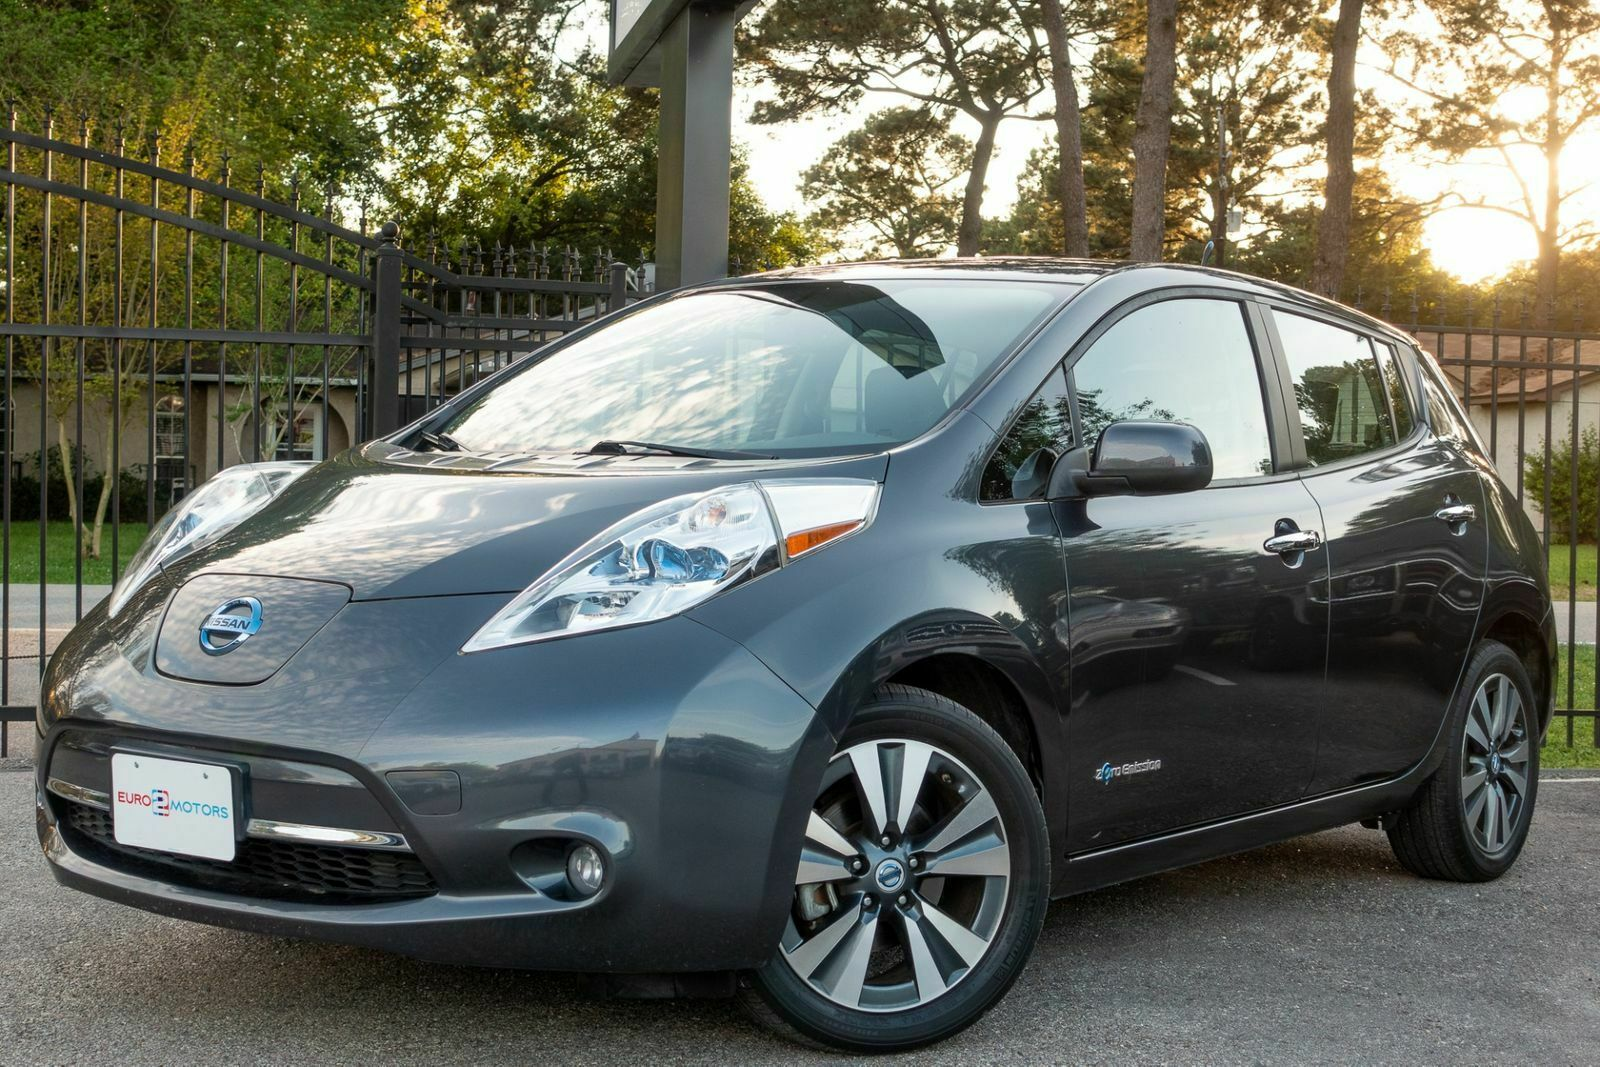 If you have access to charging, the Nissan Leaf EV could be a great delivery car.